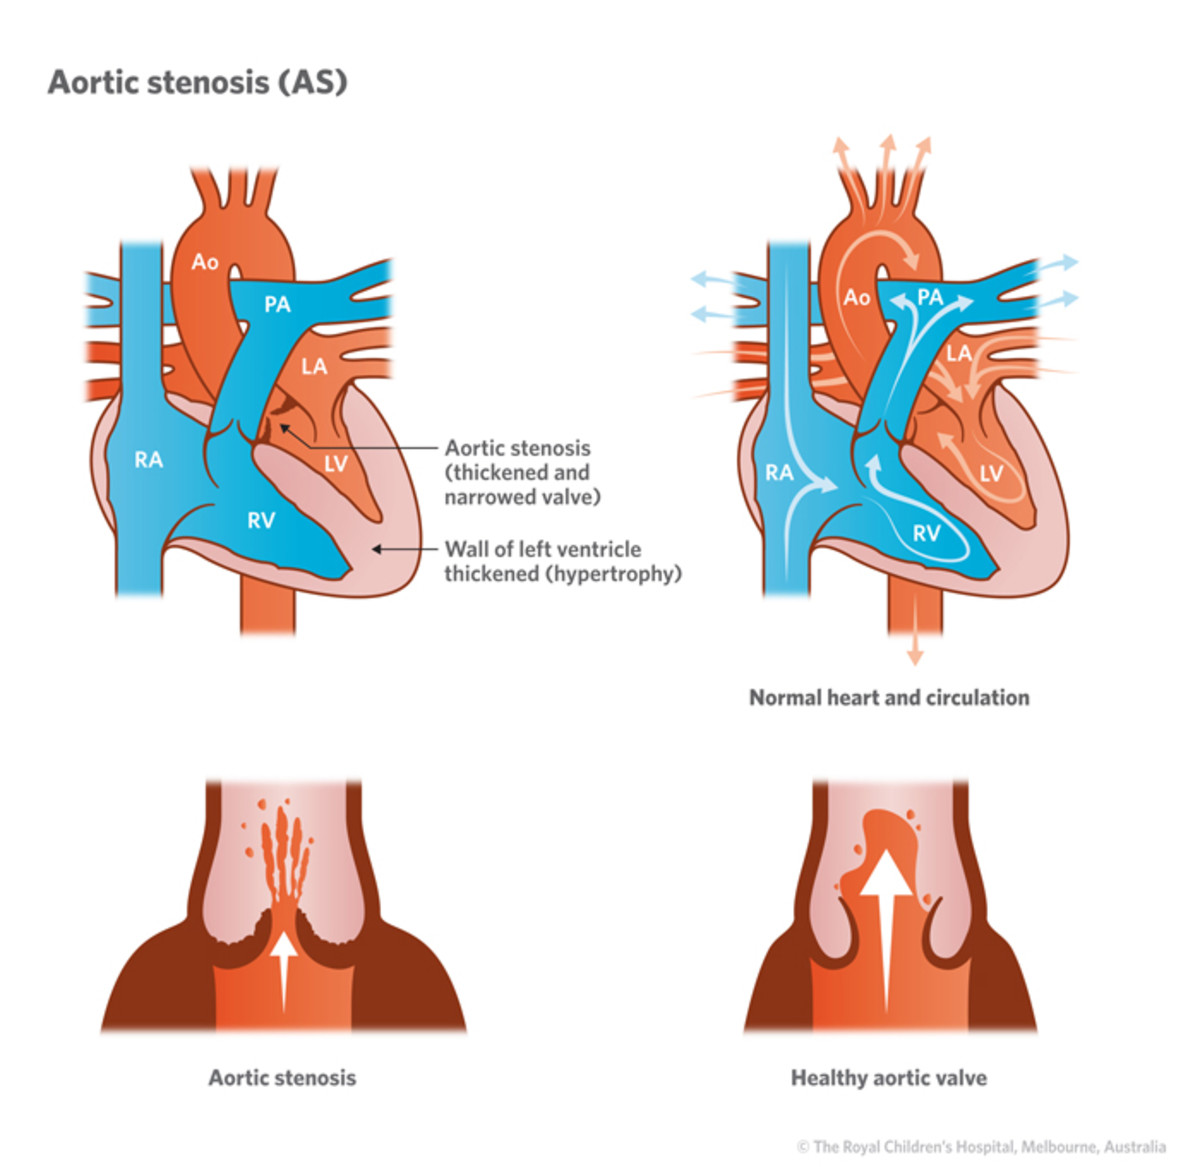 The aperture of the normal aortic valve is 2.5cm2 . Narrowing of the aperture to 0.75cm2 or less produces severe obstruction to left ventricular ejection and a pressure gradient across the aortic valve develops which may reach 50 mm to even 200 mmHg.